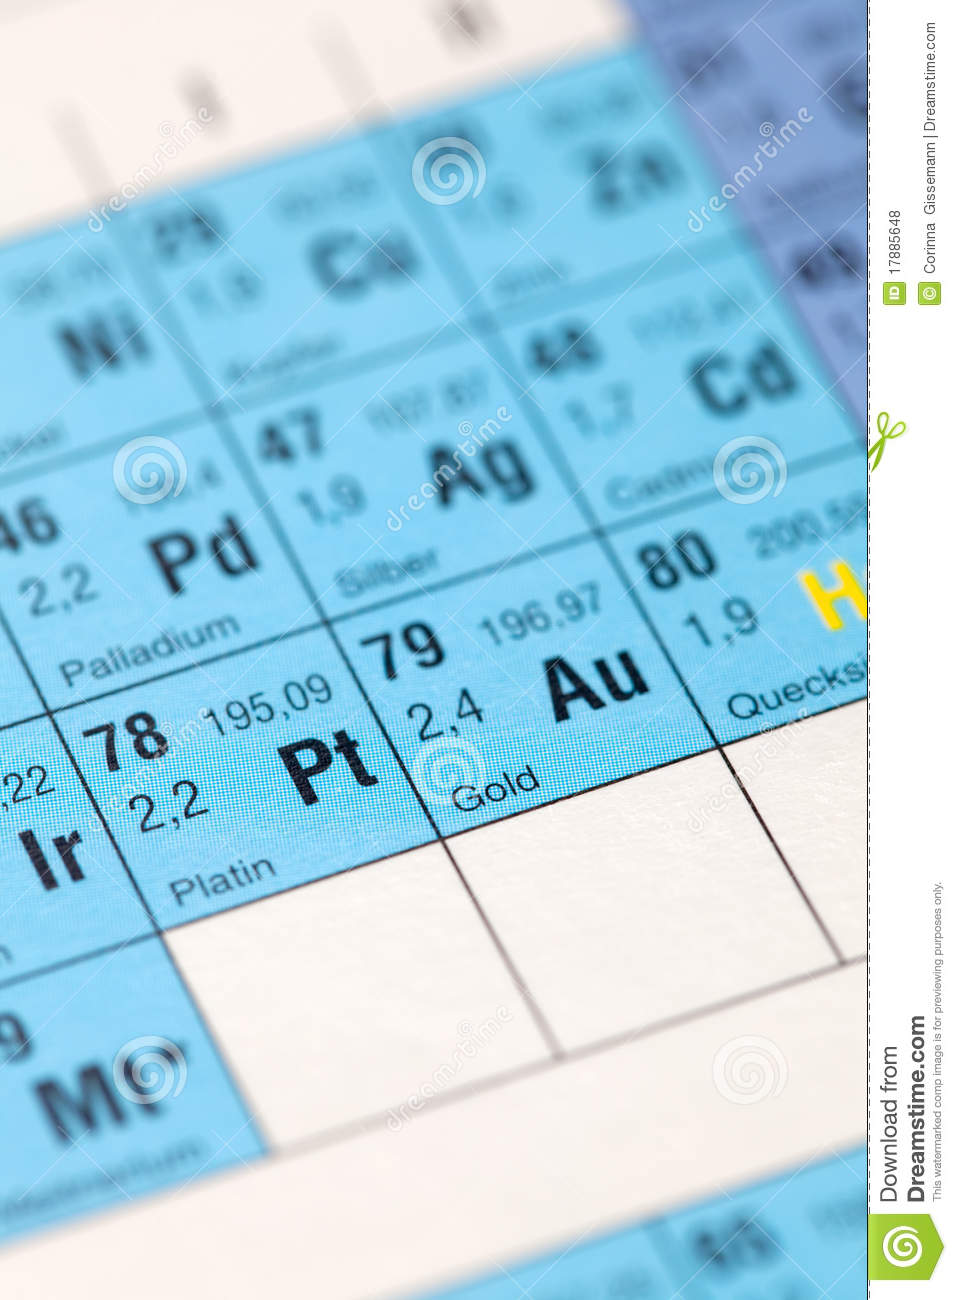 Gold Element Stock Photo Image Of Noble Focus Chemical 17885648